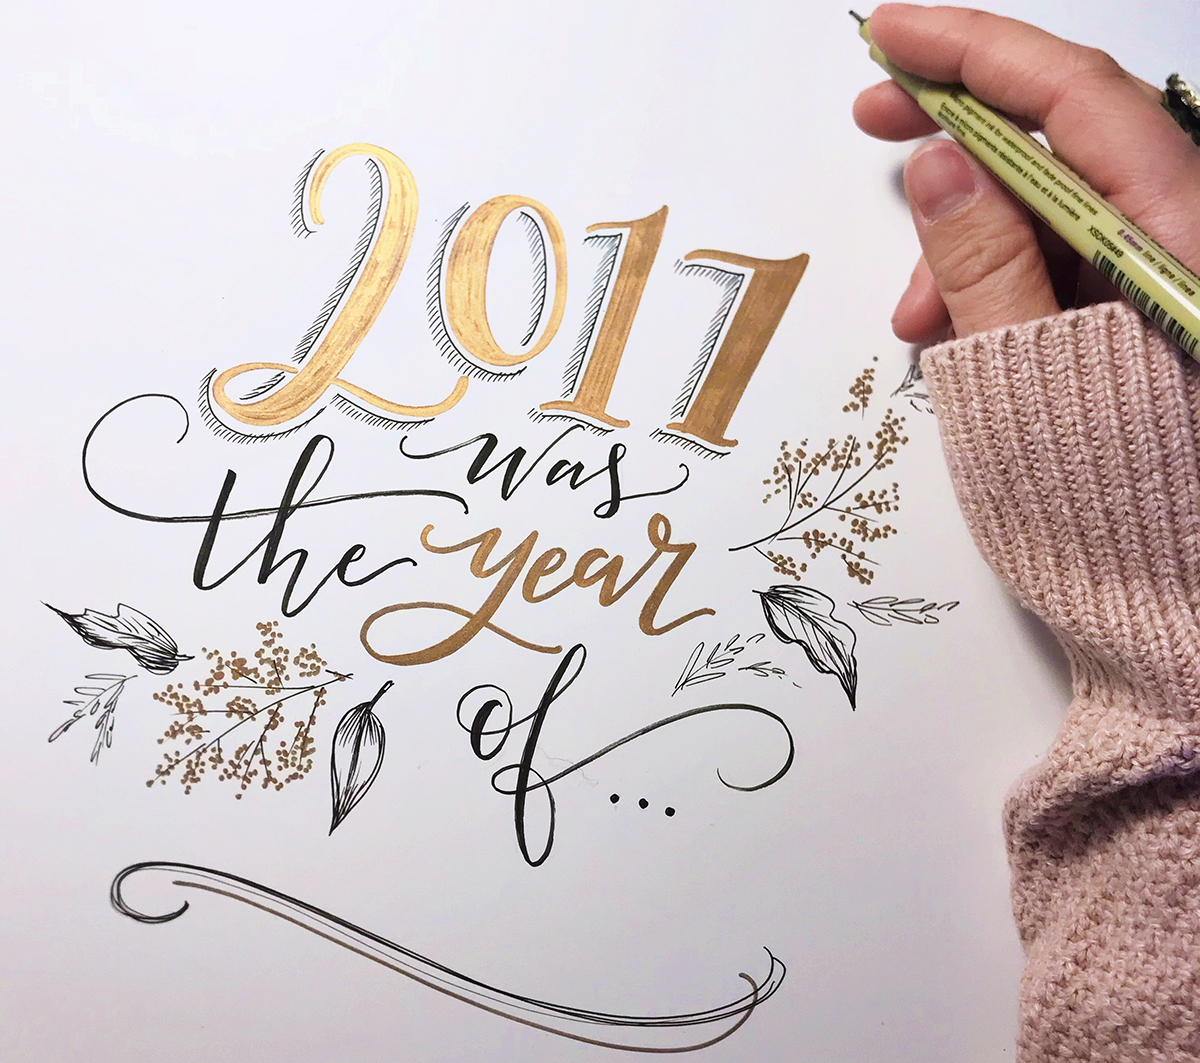 2017 Year in Review at Lily & Val